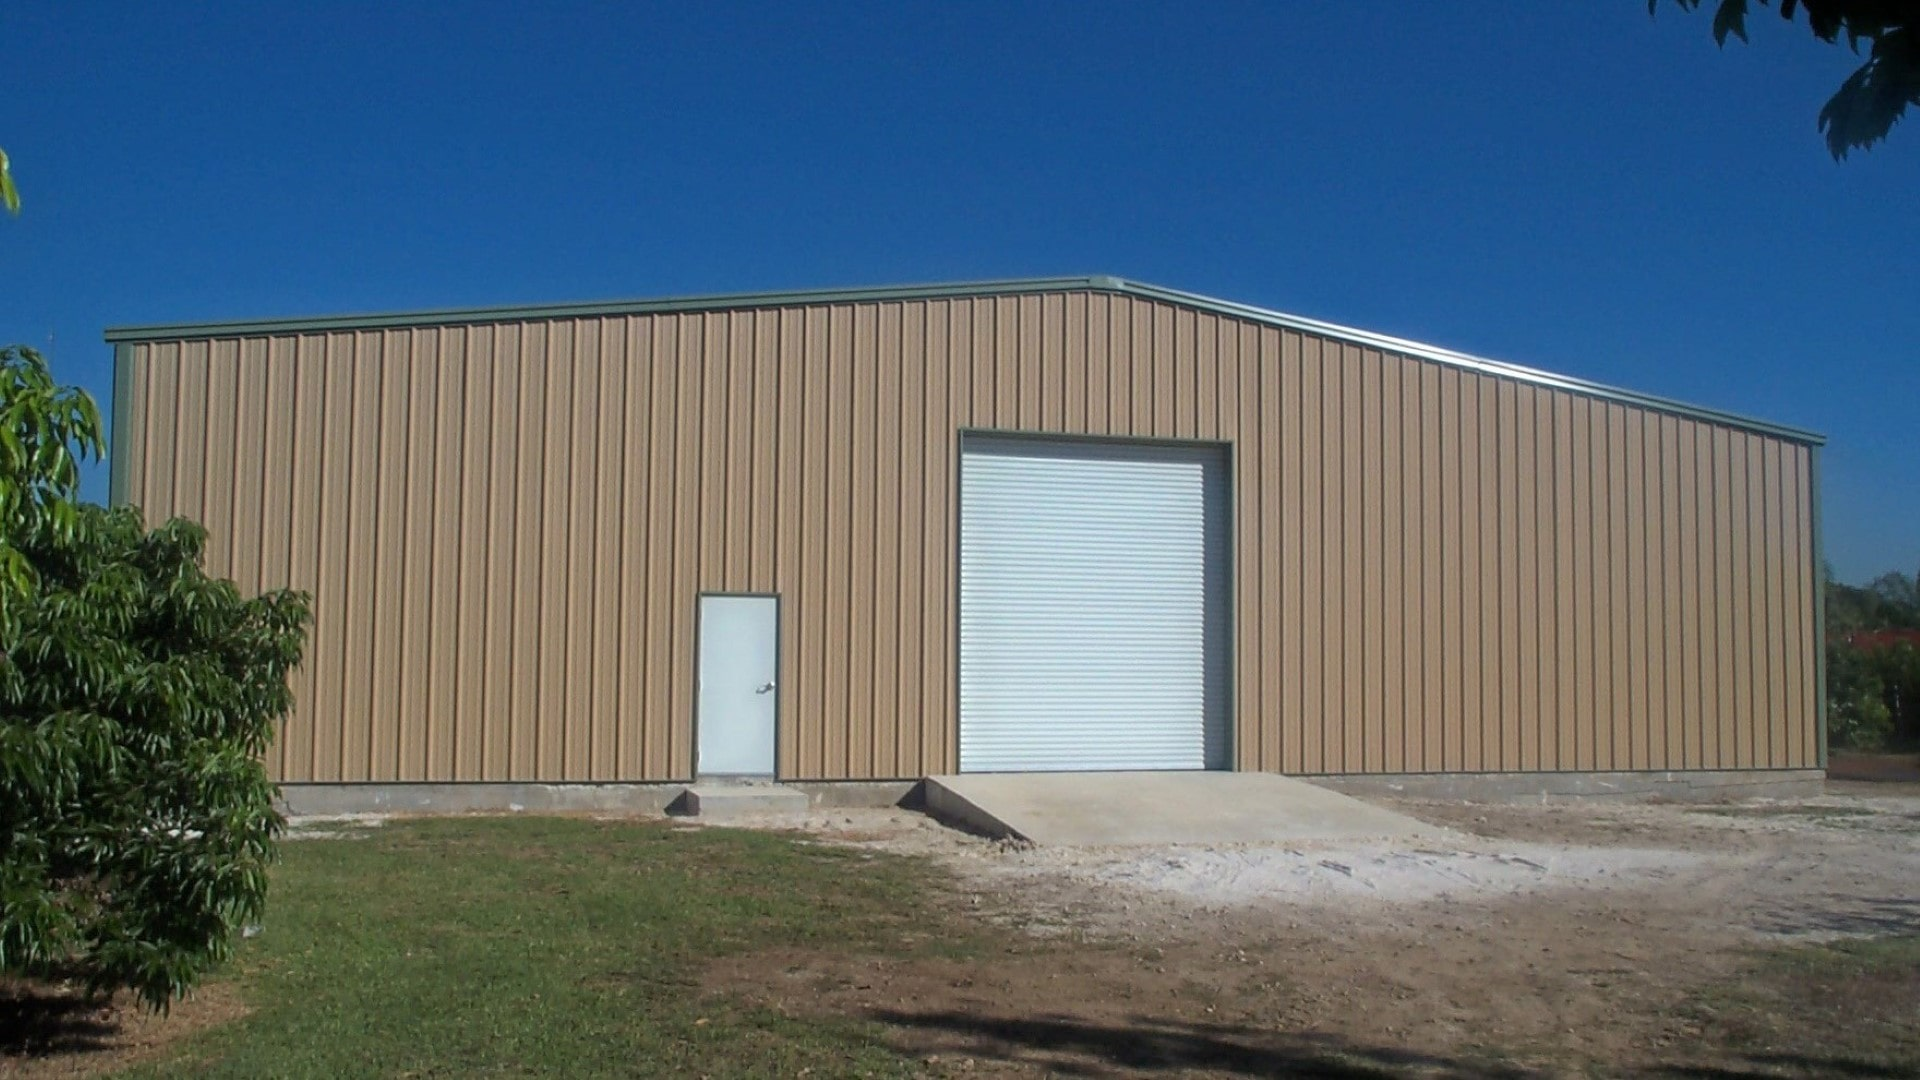 Steel farm storage building in brown color with green trim and white doors.